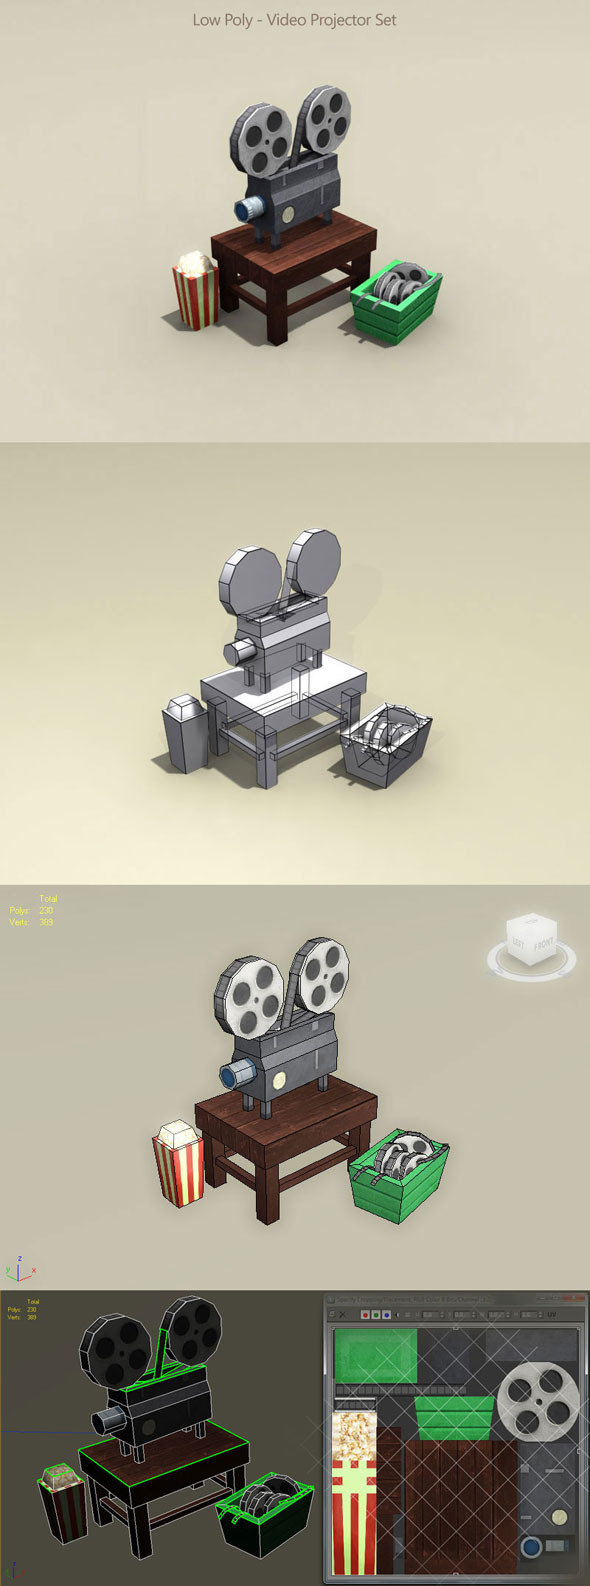 Low Poly Video Projector Set